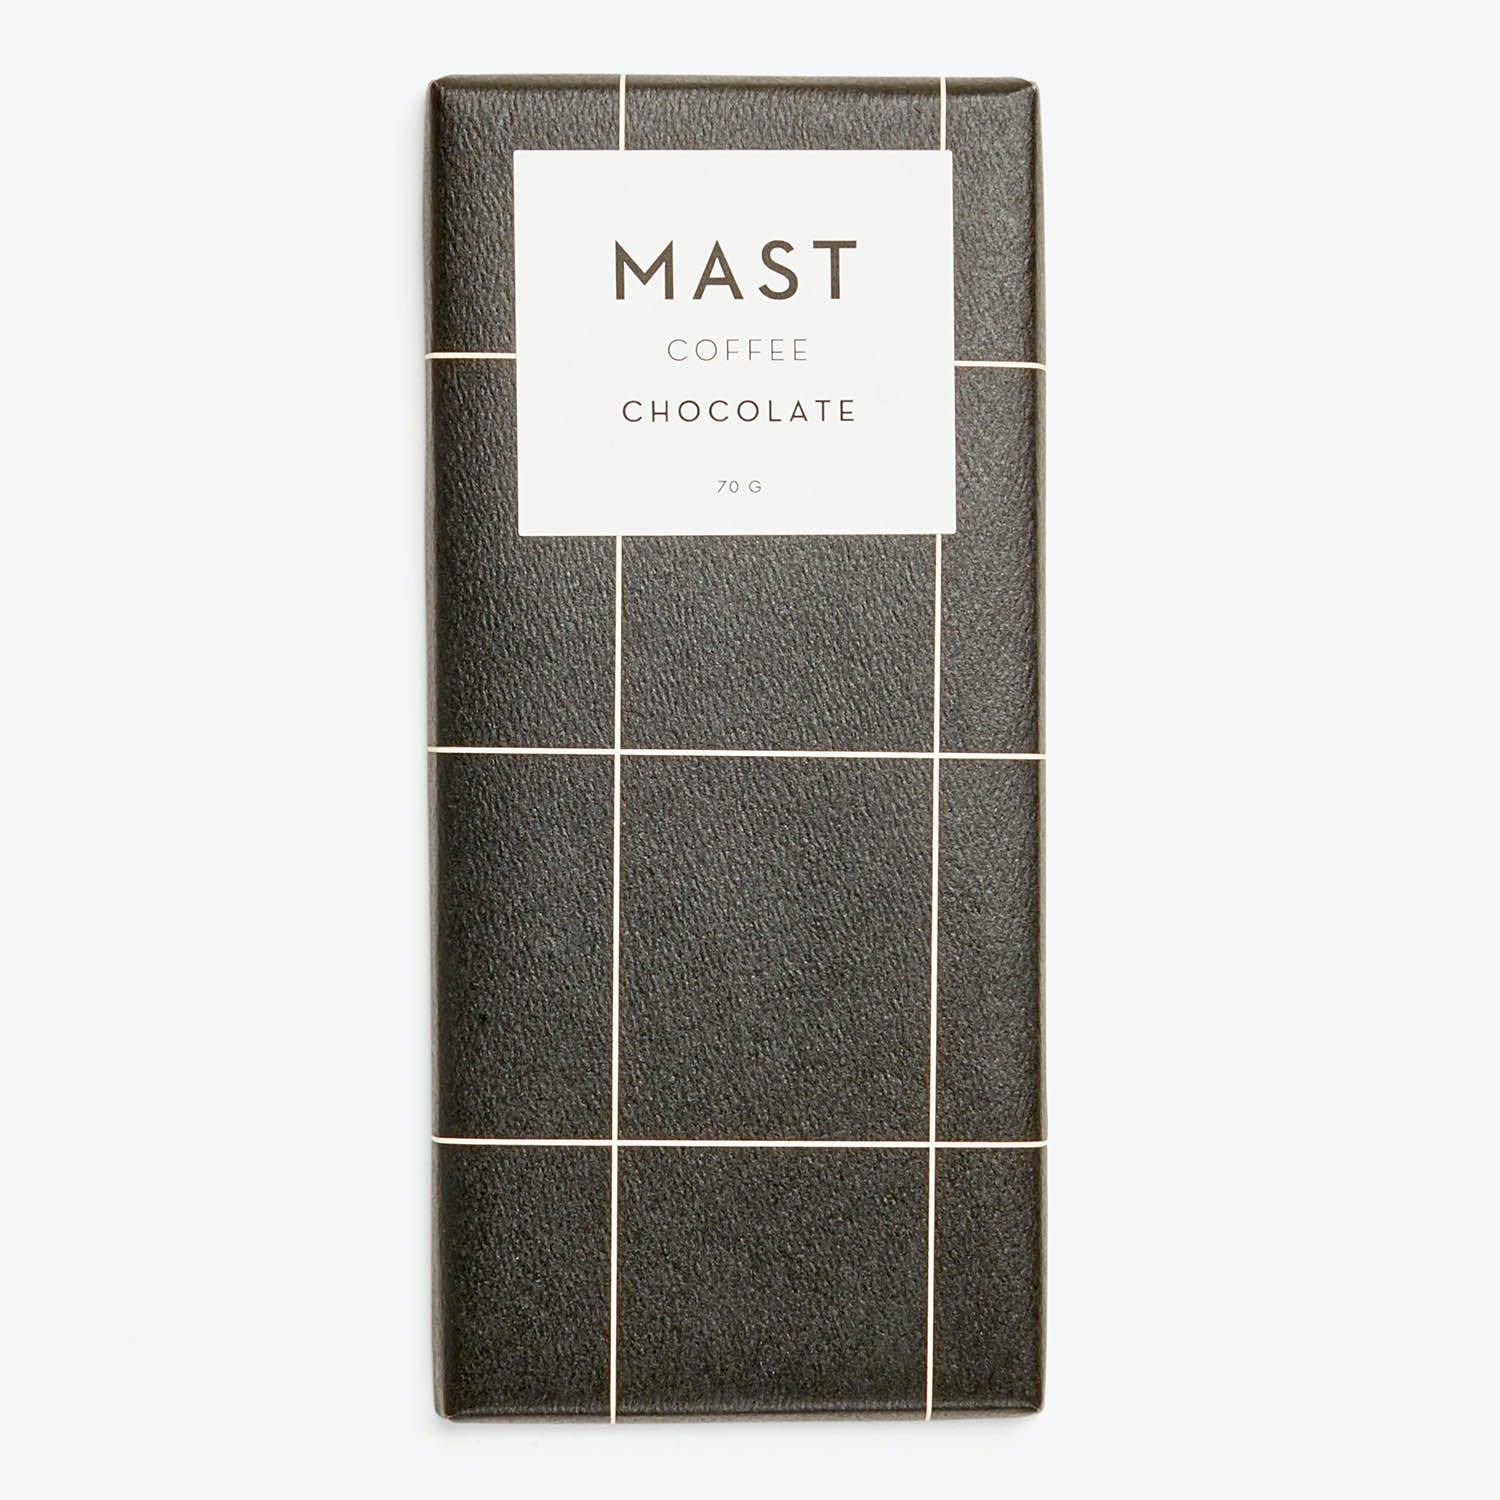 Mast Brothers Chocolate Milk with Roasted Coffee Beans